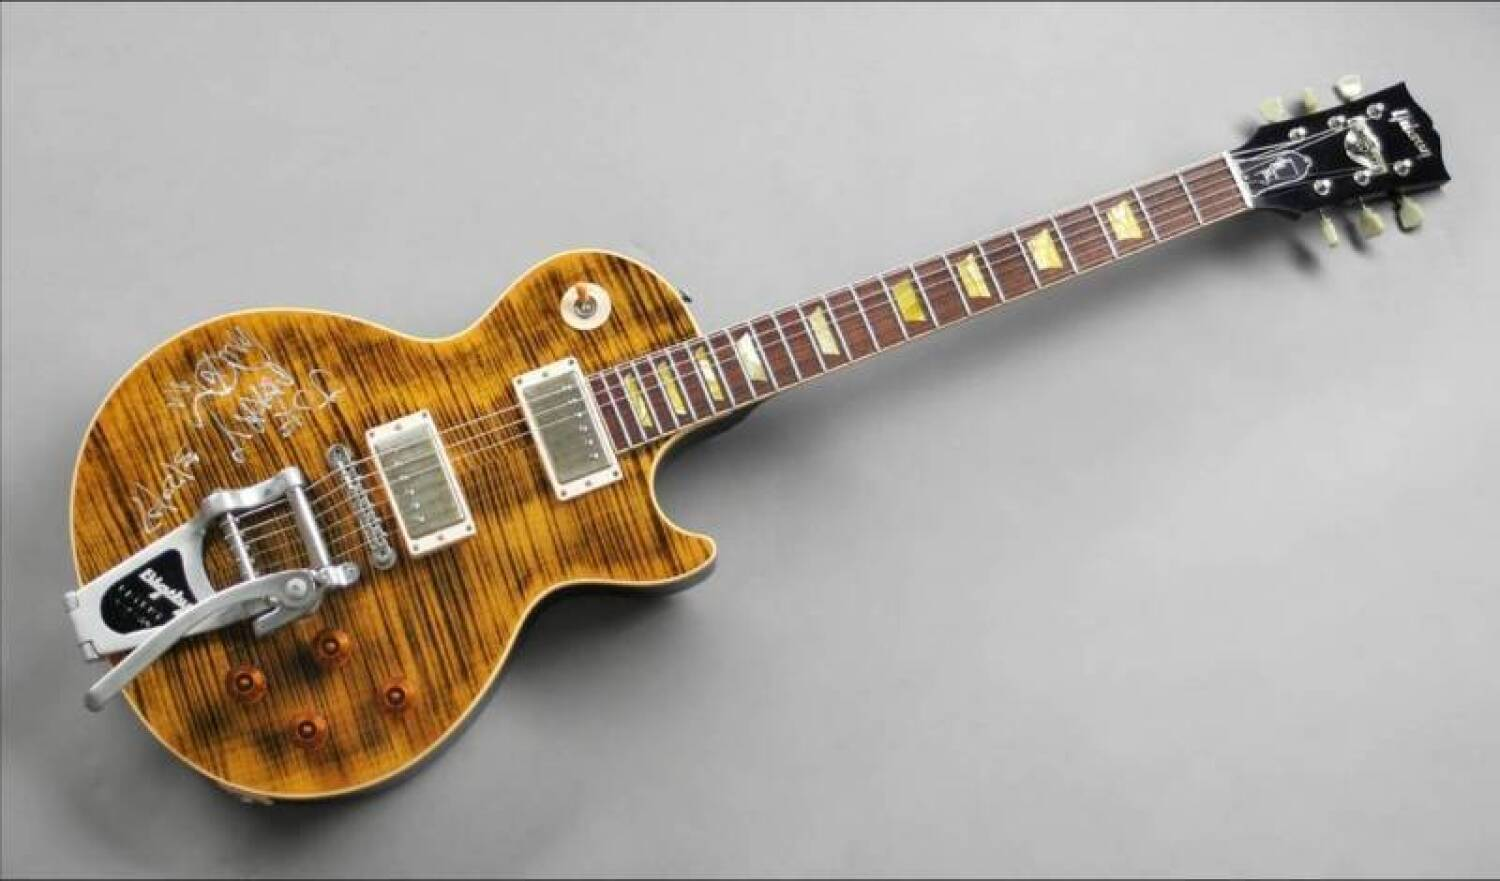 joe perry signed gibson les paul signature guitar current price 0. Black Bedroom Furniture Sets. Home Design Ideas